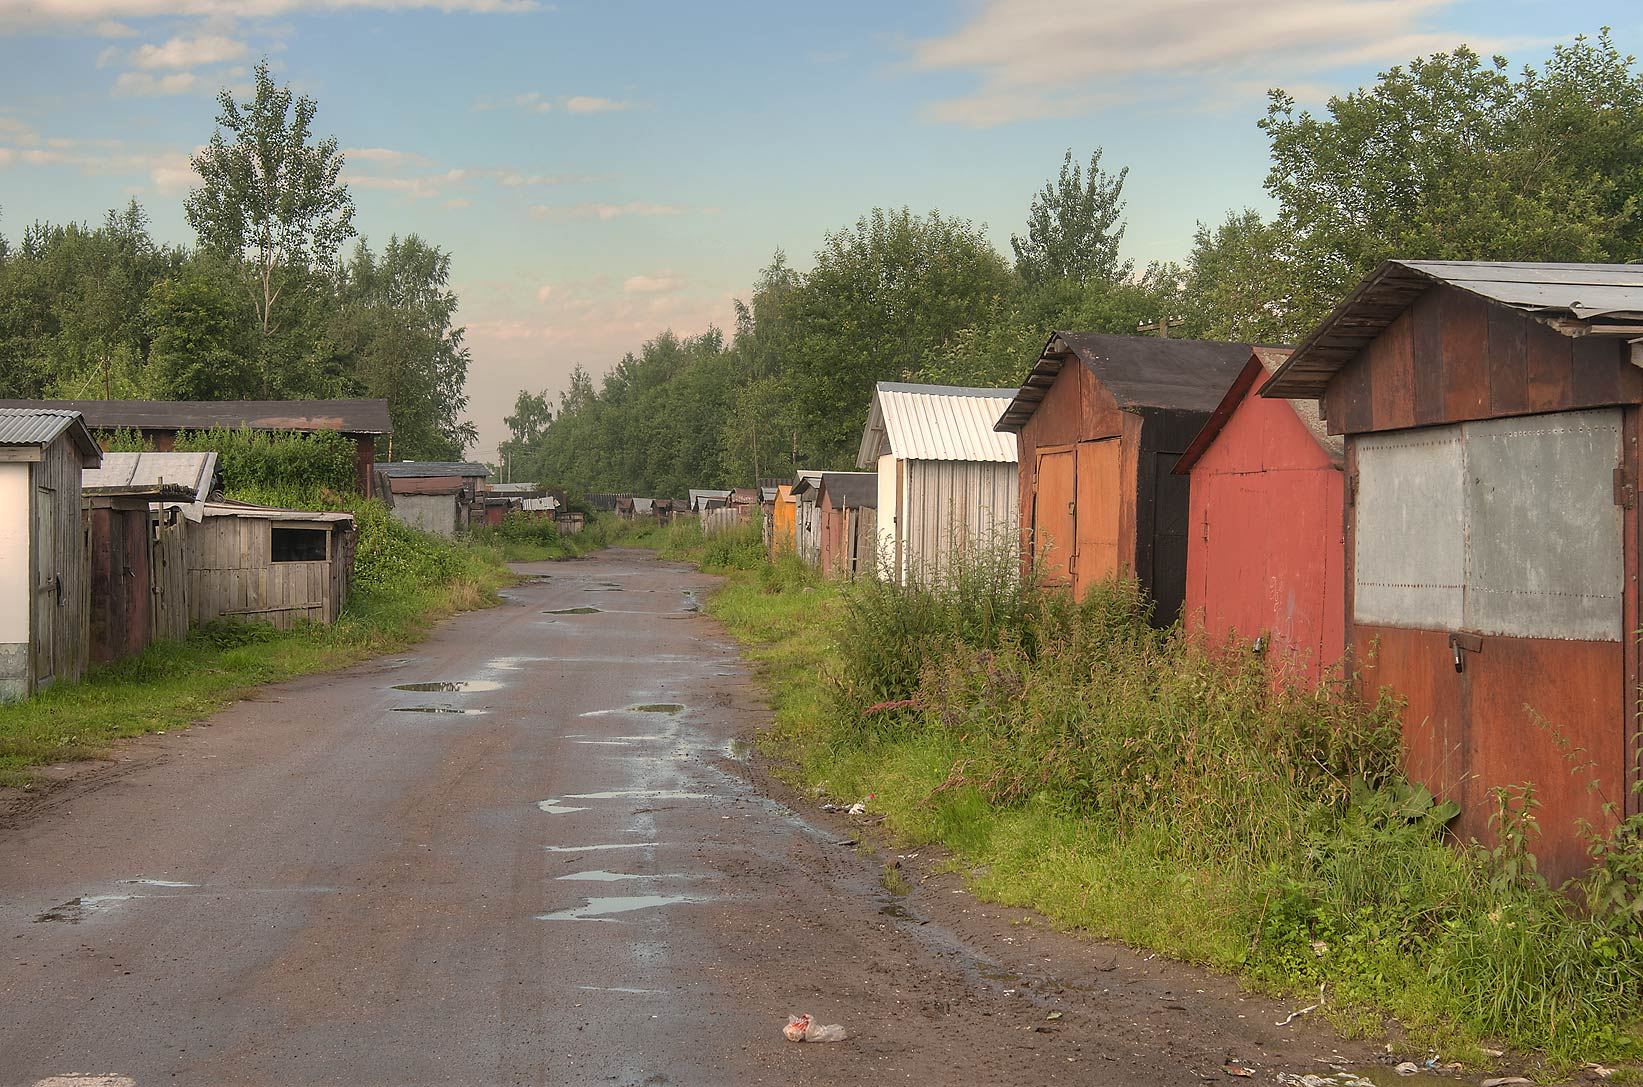 Shack alley (old garages) in Lavriki, 2 miles north from St.Petersburg. Russia